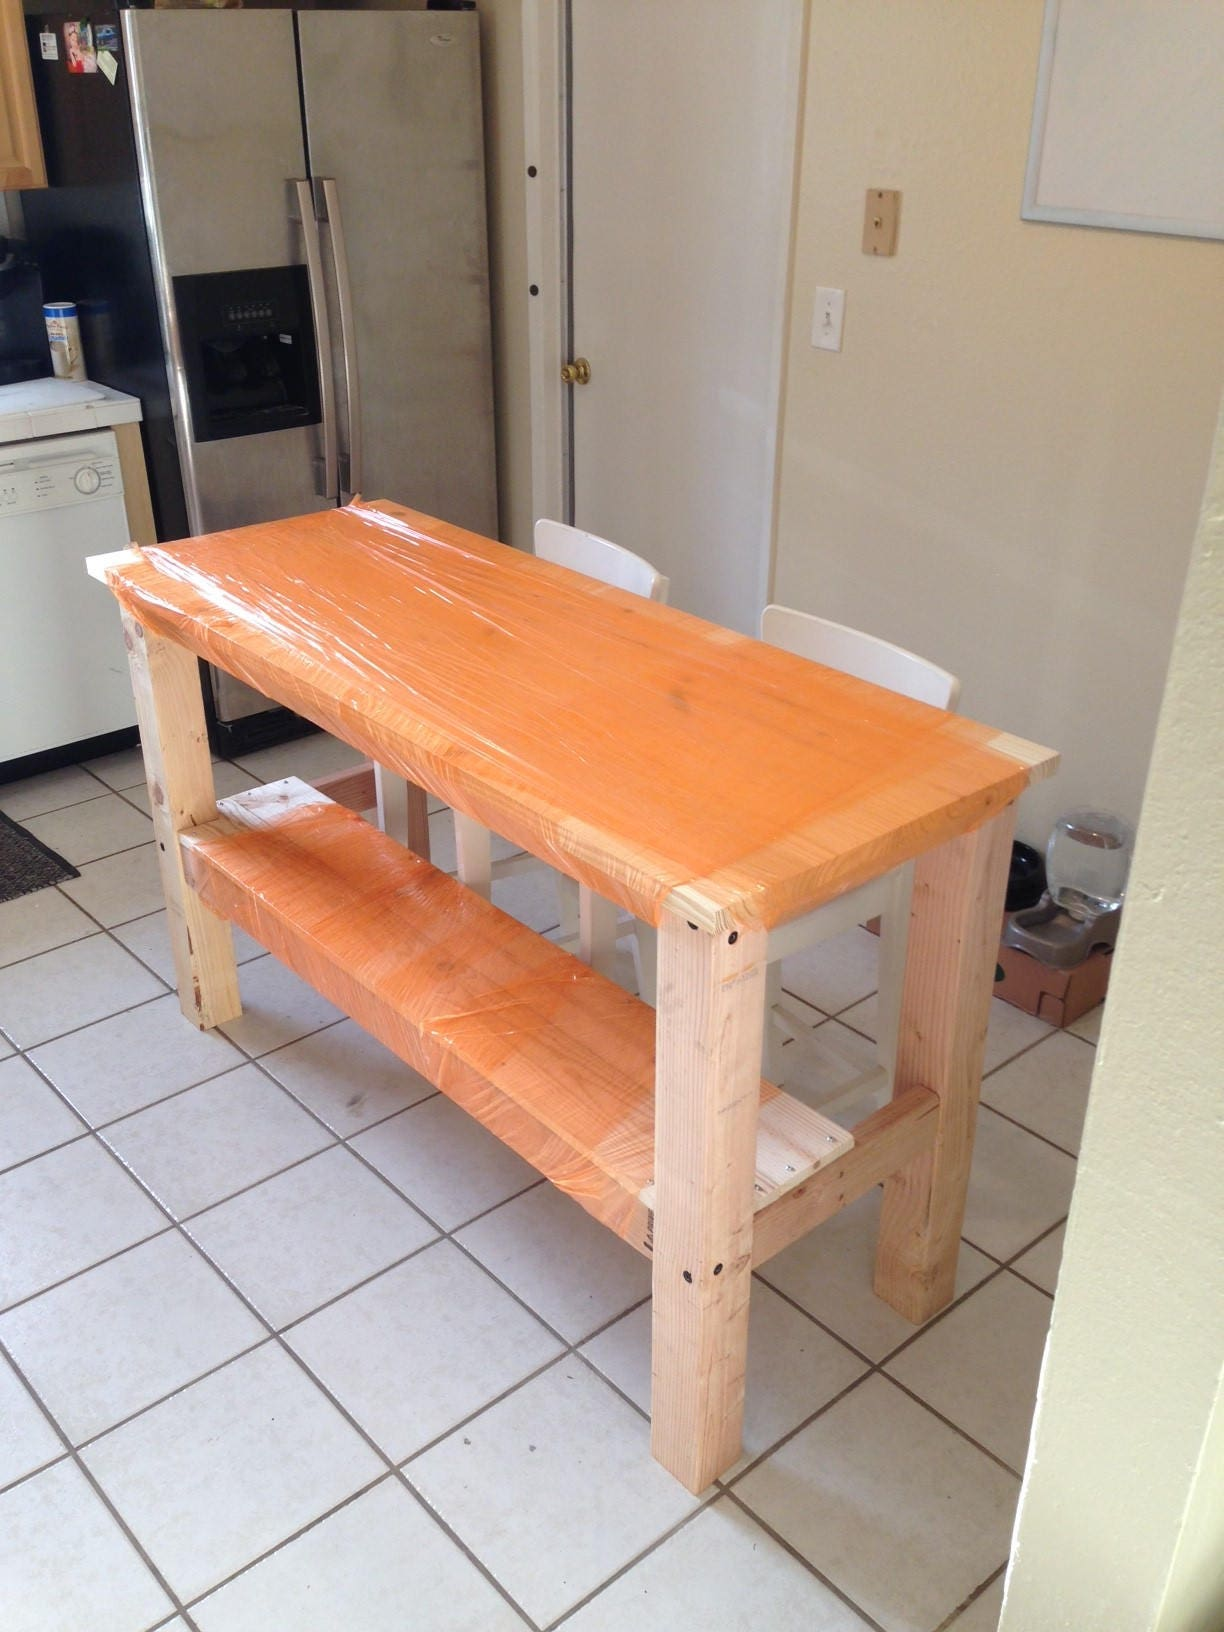 1 Half Shelf Kitchen Island Butcher Block Style Table With